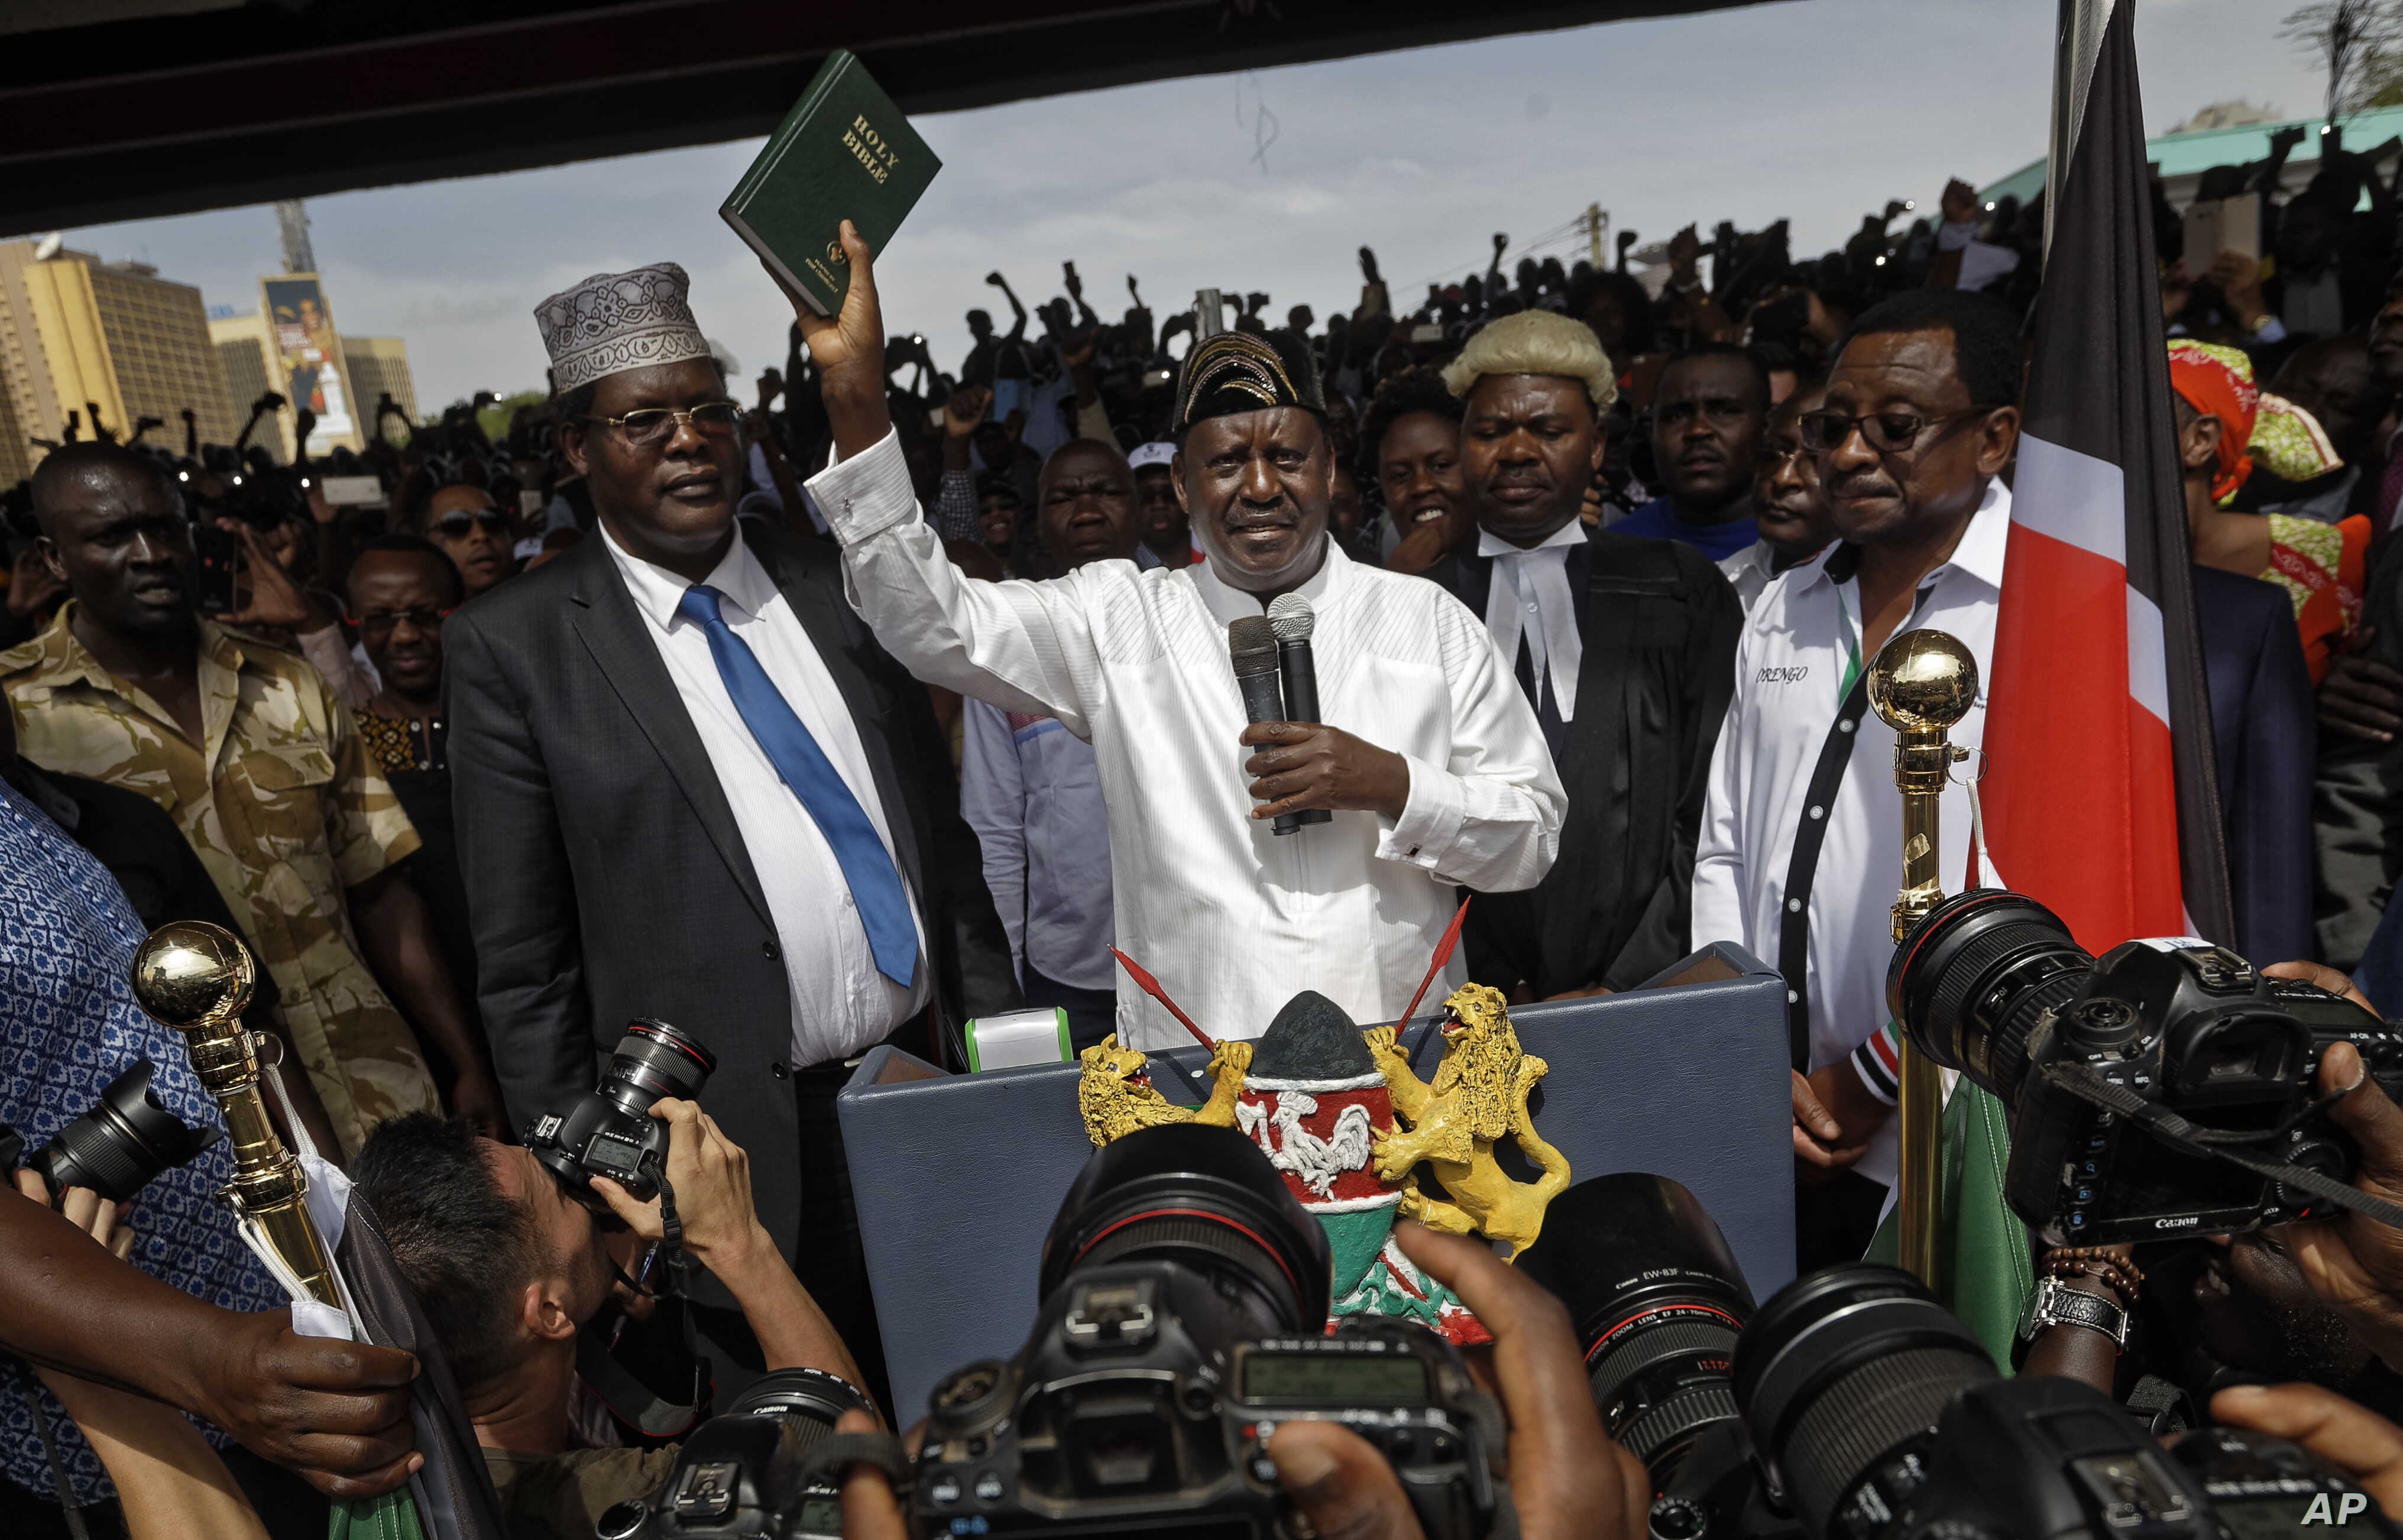 """FILE - Opposition leader Raila Odinga (C) accompanied by lawyers Miguna Miguna (C-L), Tom """"T.J."""" Kajwang, (C-R) and politician James Orengo (R) holds a bible aloft after swearing an oath during a mock """"swearing-in"""" ceremony at Uhuru Park in downtown ..."""